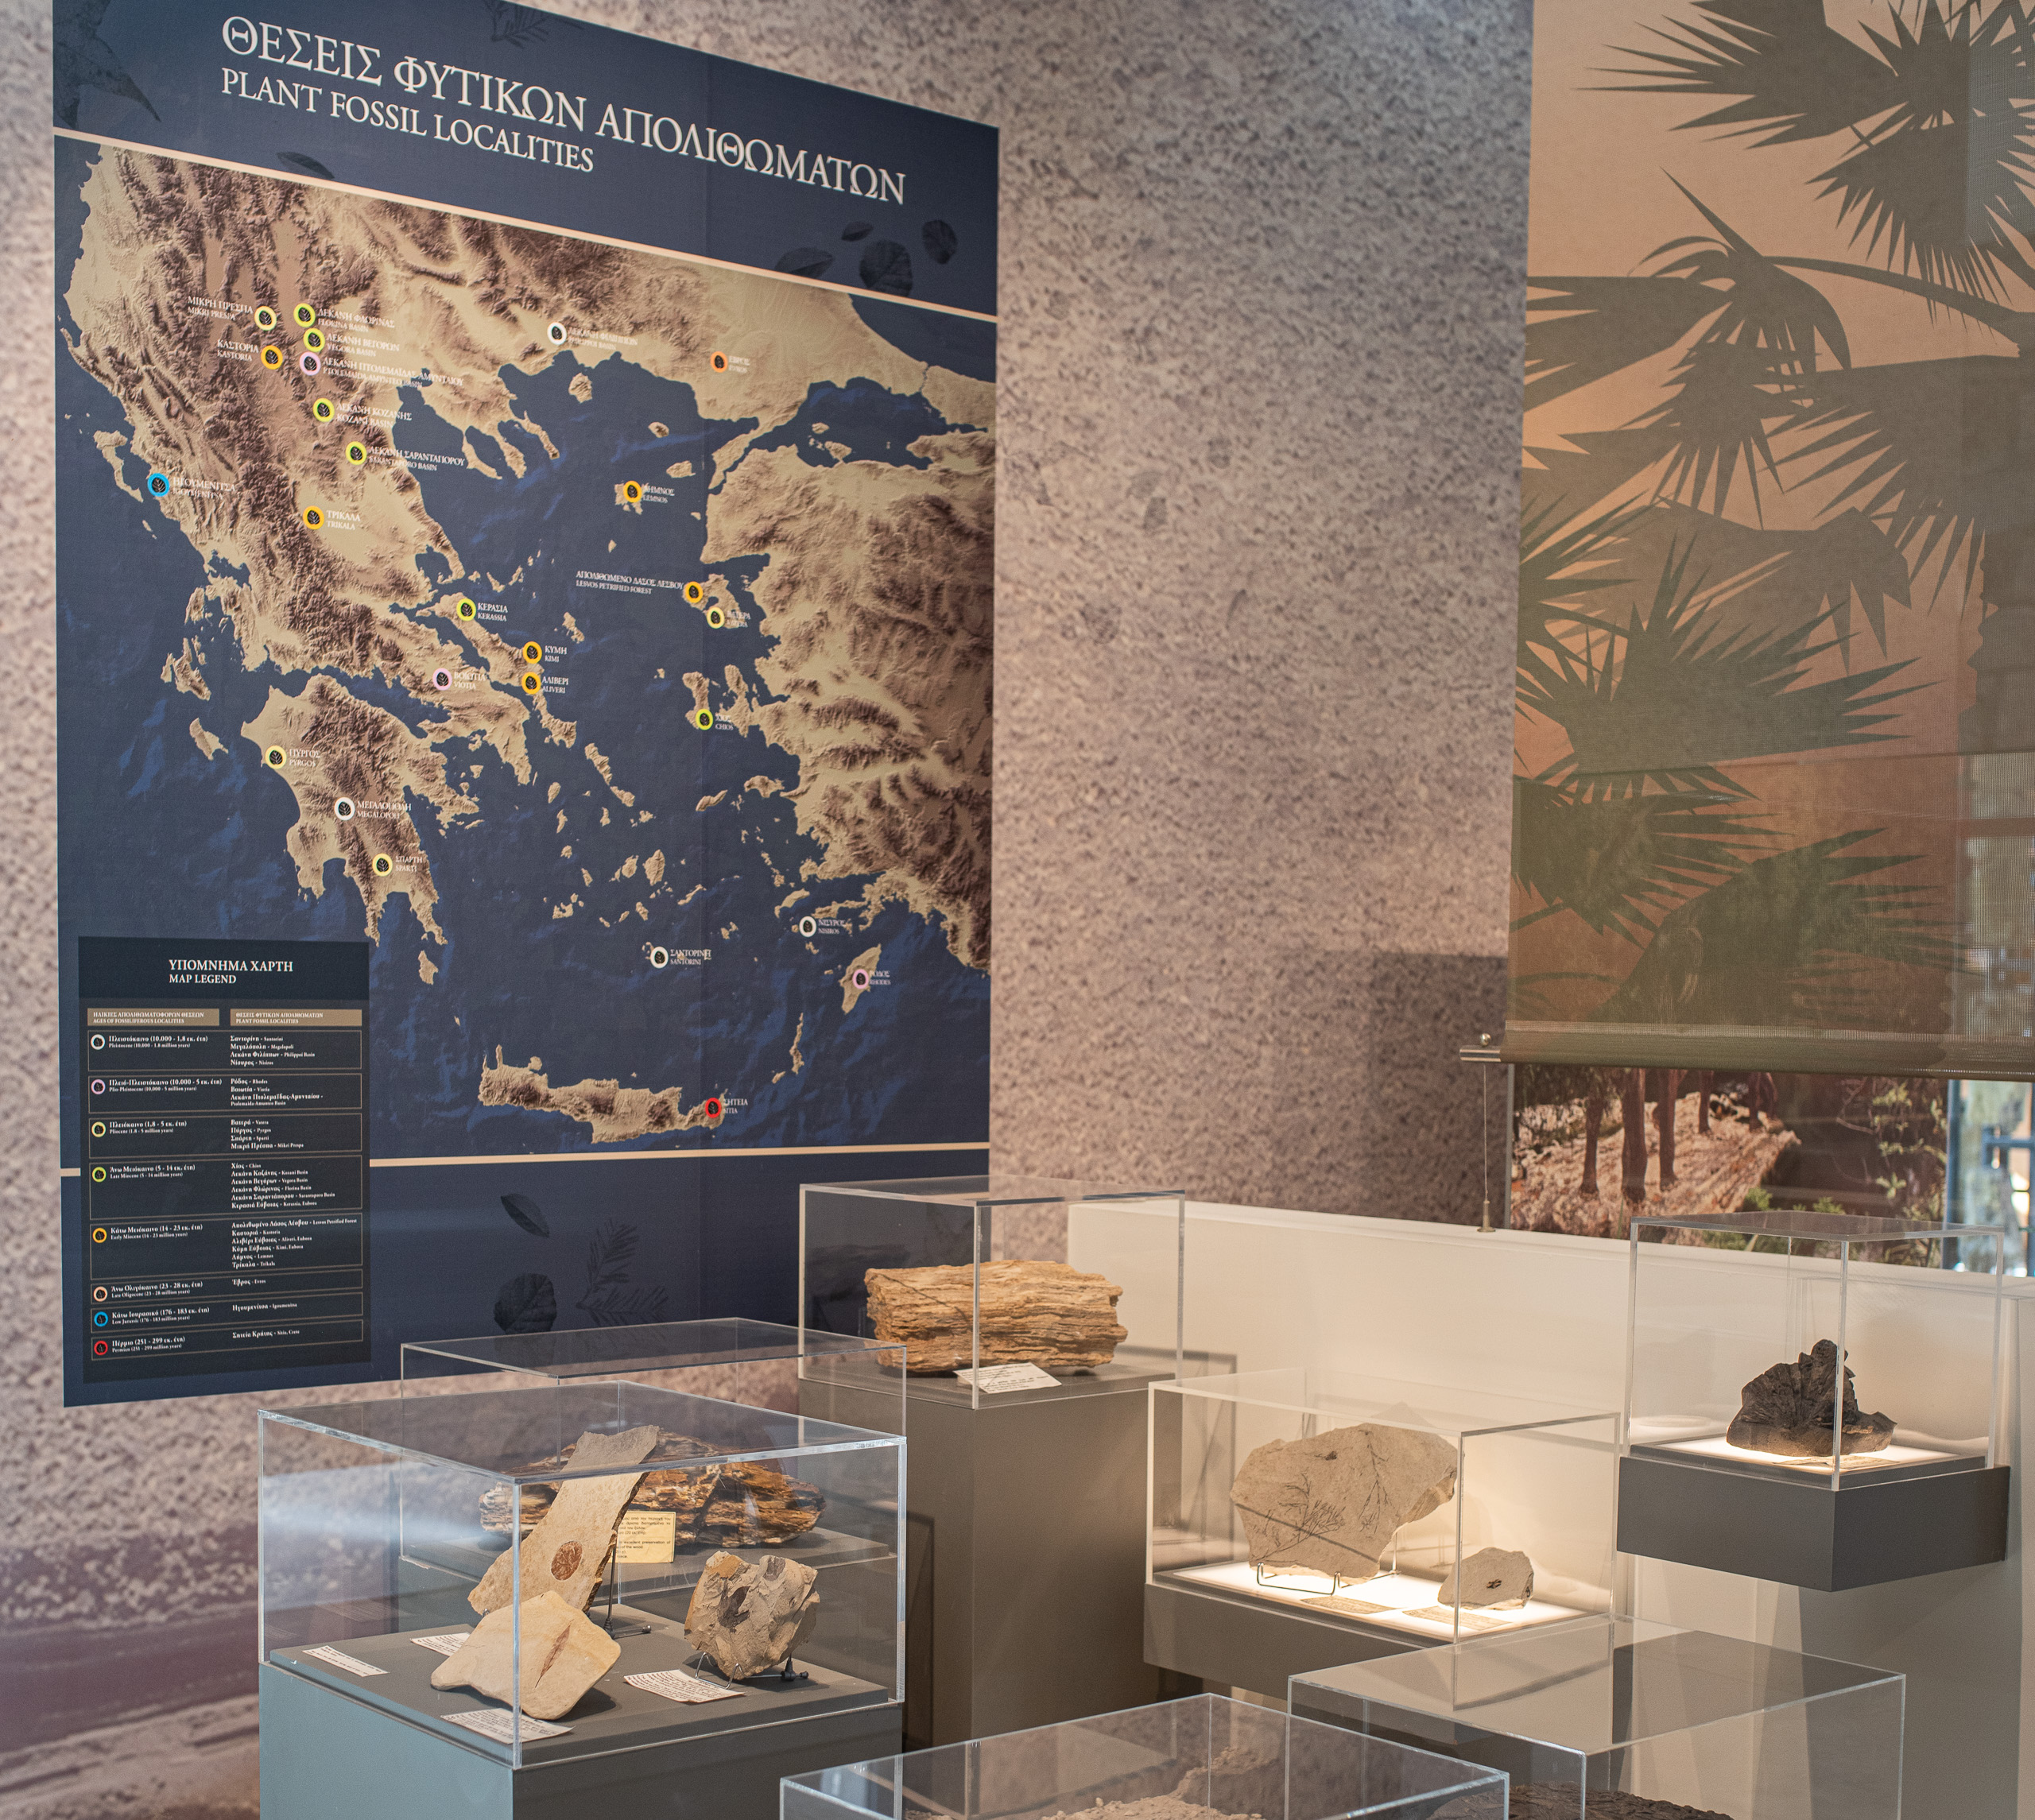 Fossilized plants of Greece